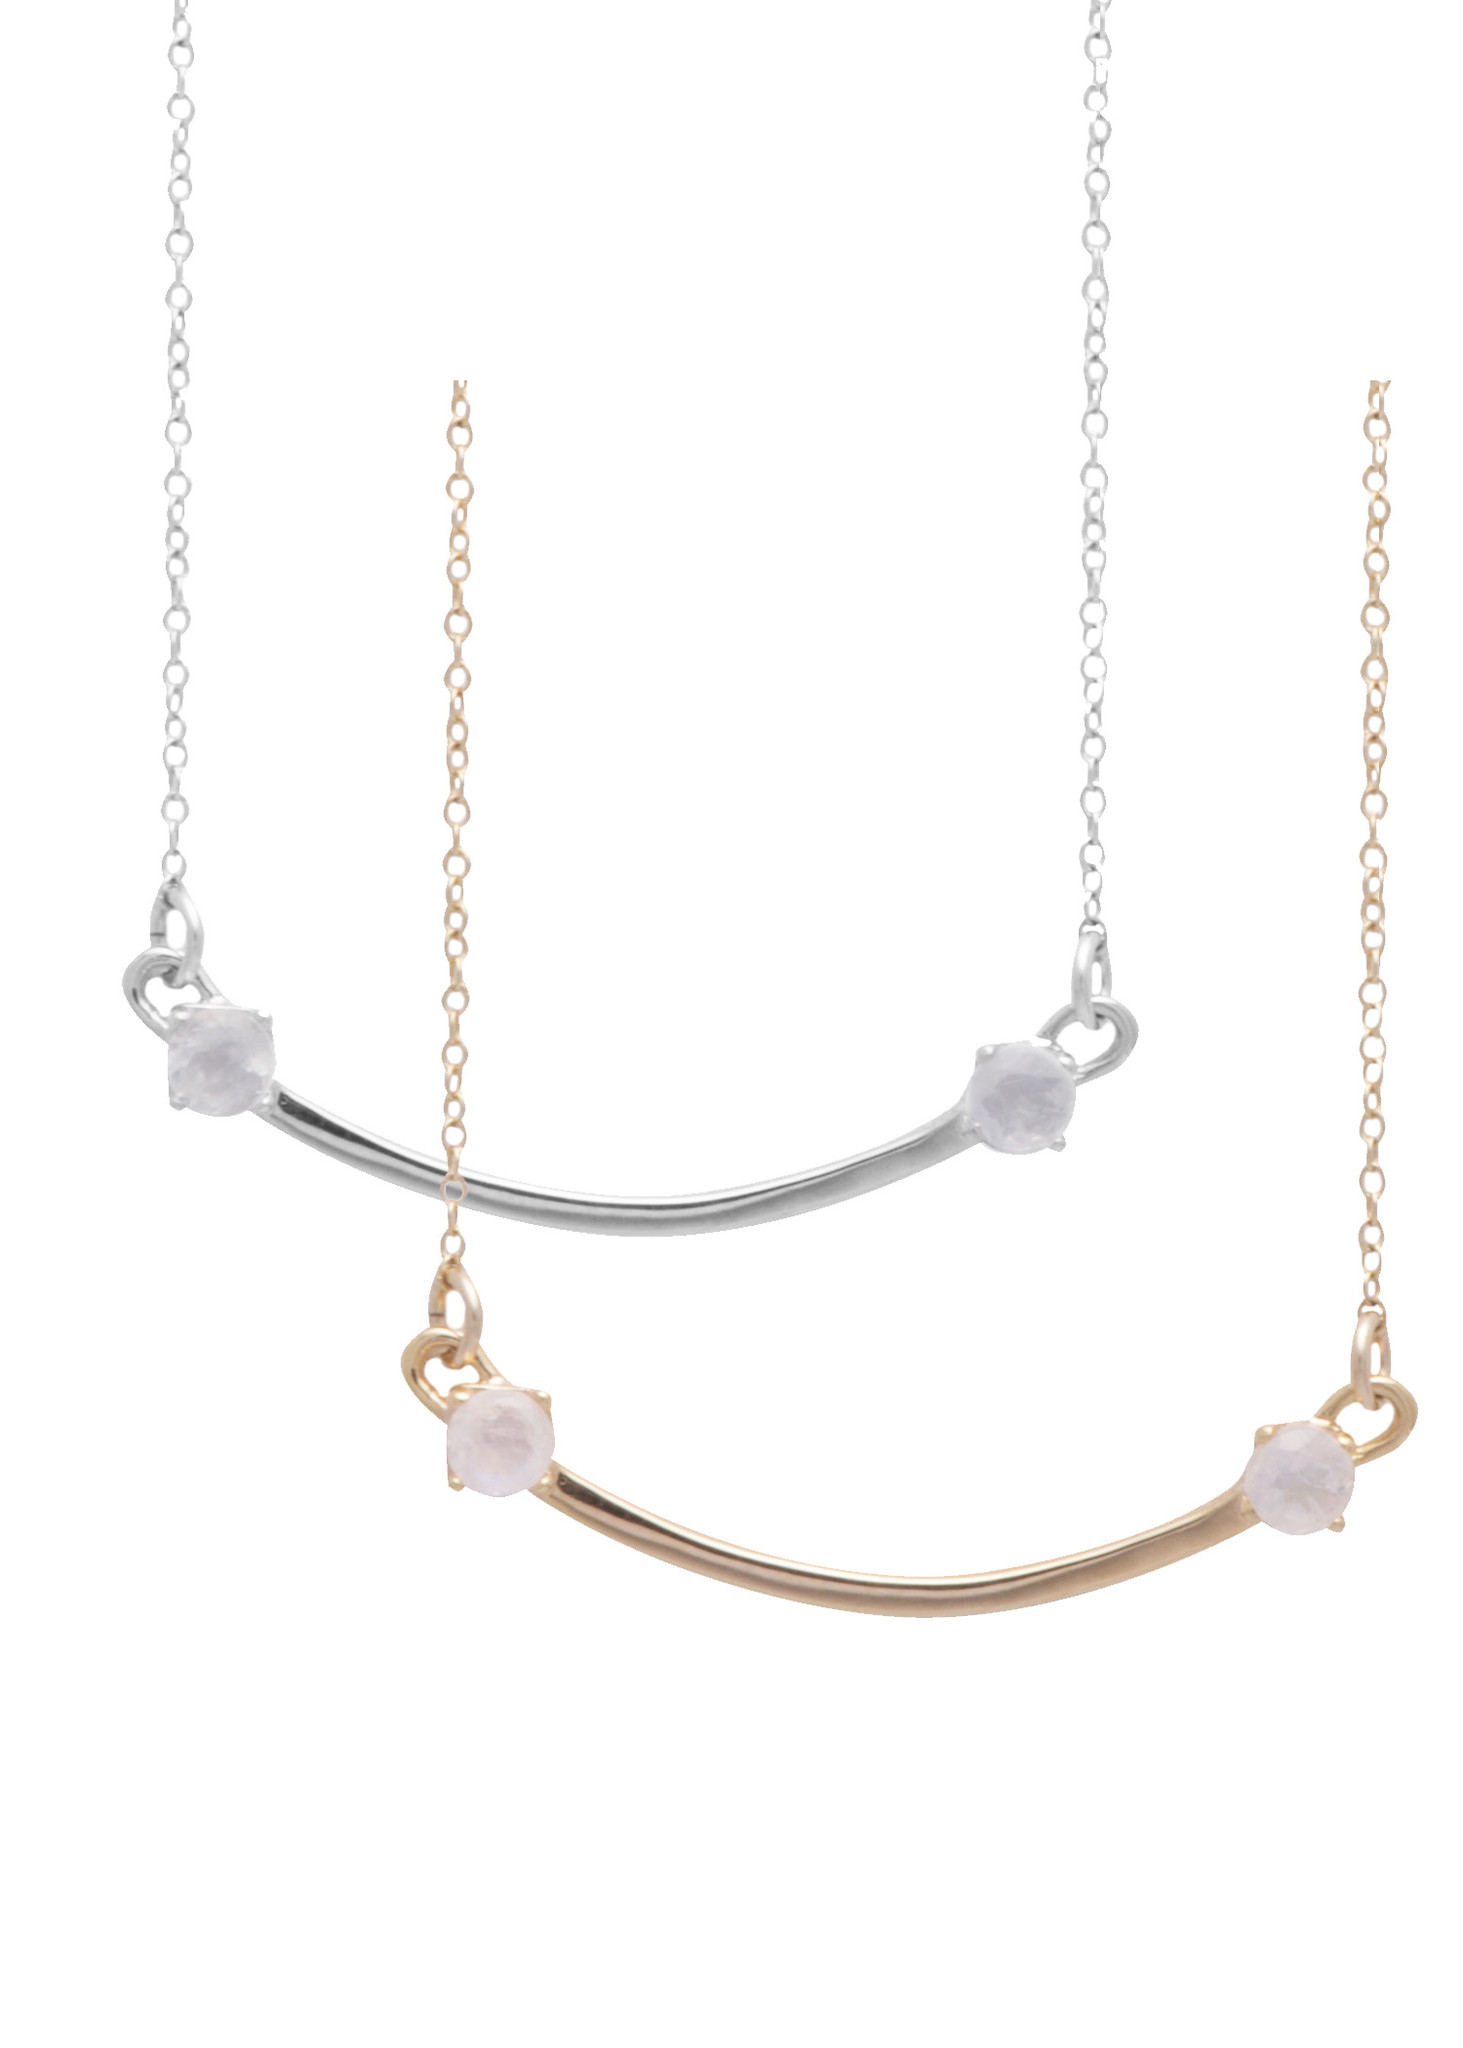 Sarah Mulder Jewelry Collier Muse